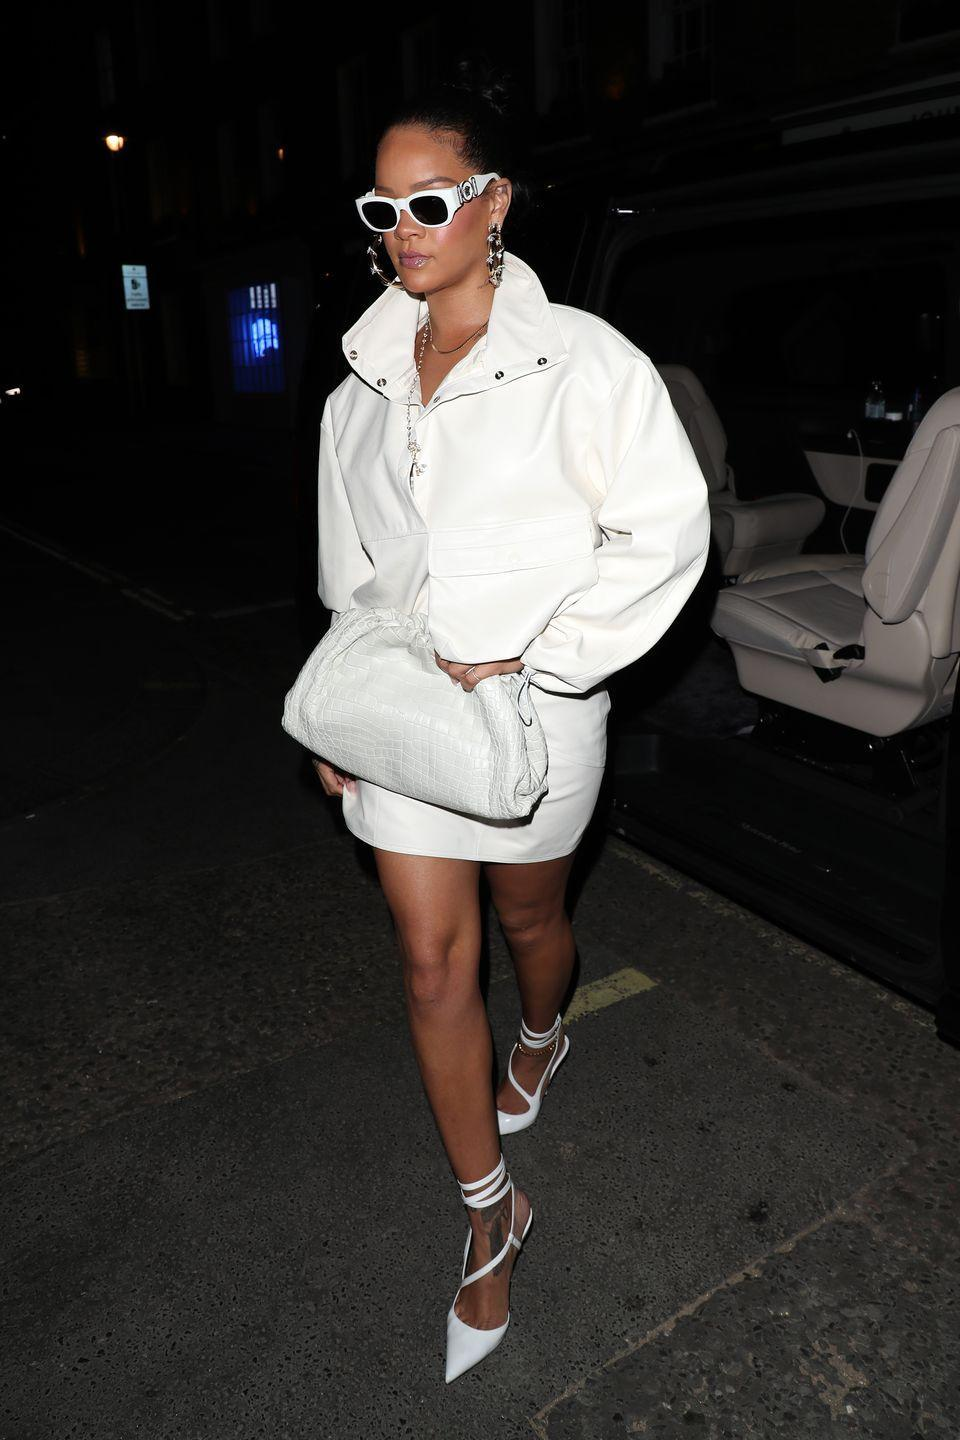 <p>In a white pullover by The Frankie Shop, leather skirt by Fenty, lace-up pumps, sunglasses, croc clutch, and oversized hoop earrings while arriving to a Fabergé event in London. </p>